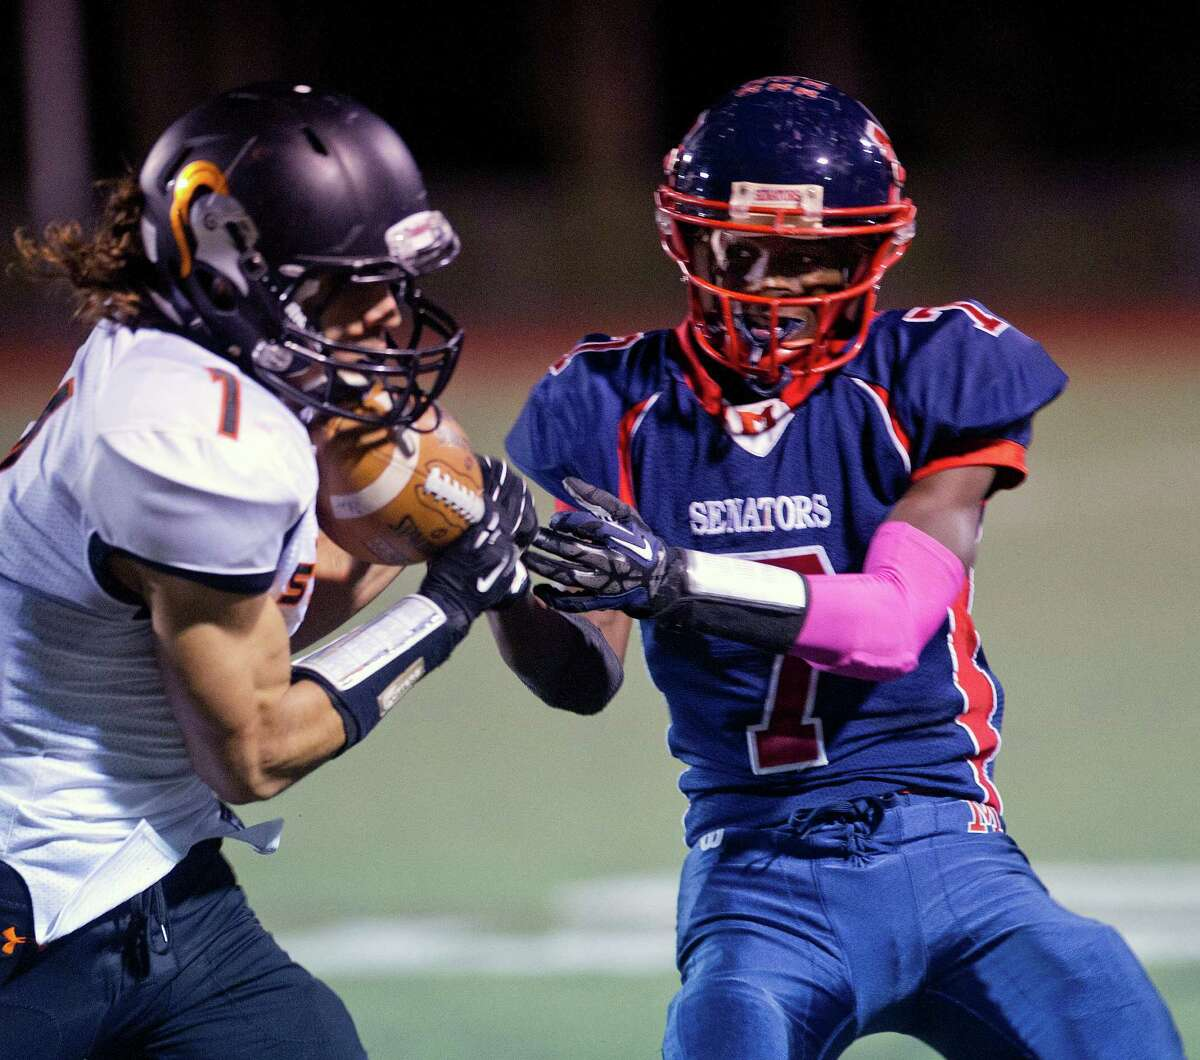 Stamford's Jake Bivona intercepts a ball meant for Brien McMahon's Kentrell Snider during Friday's football game in Norwalk, Conn., on October 18, 2013.